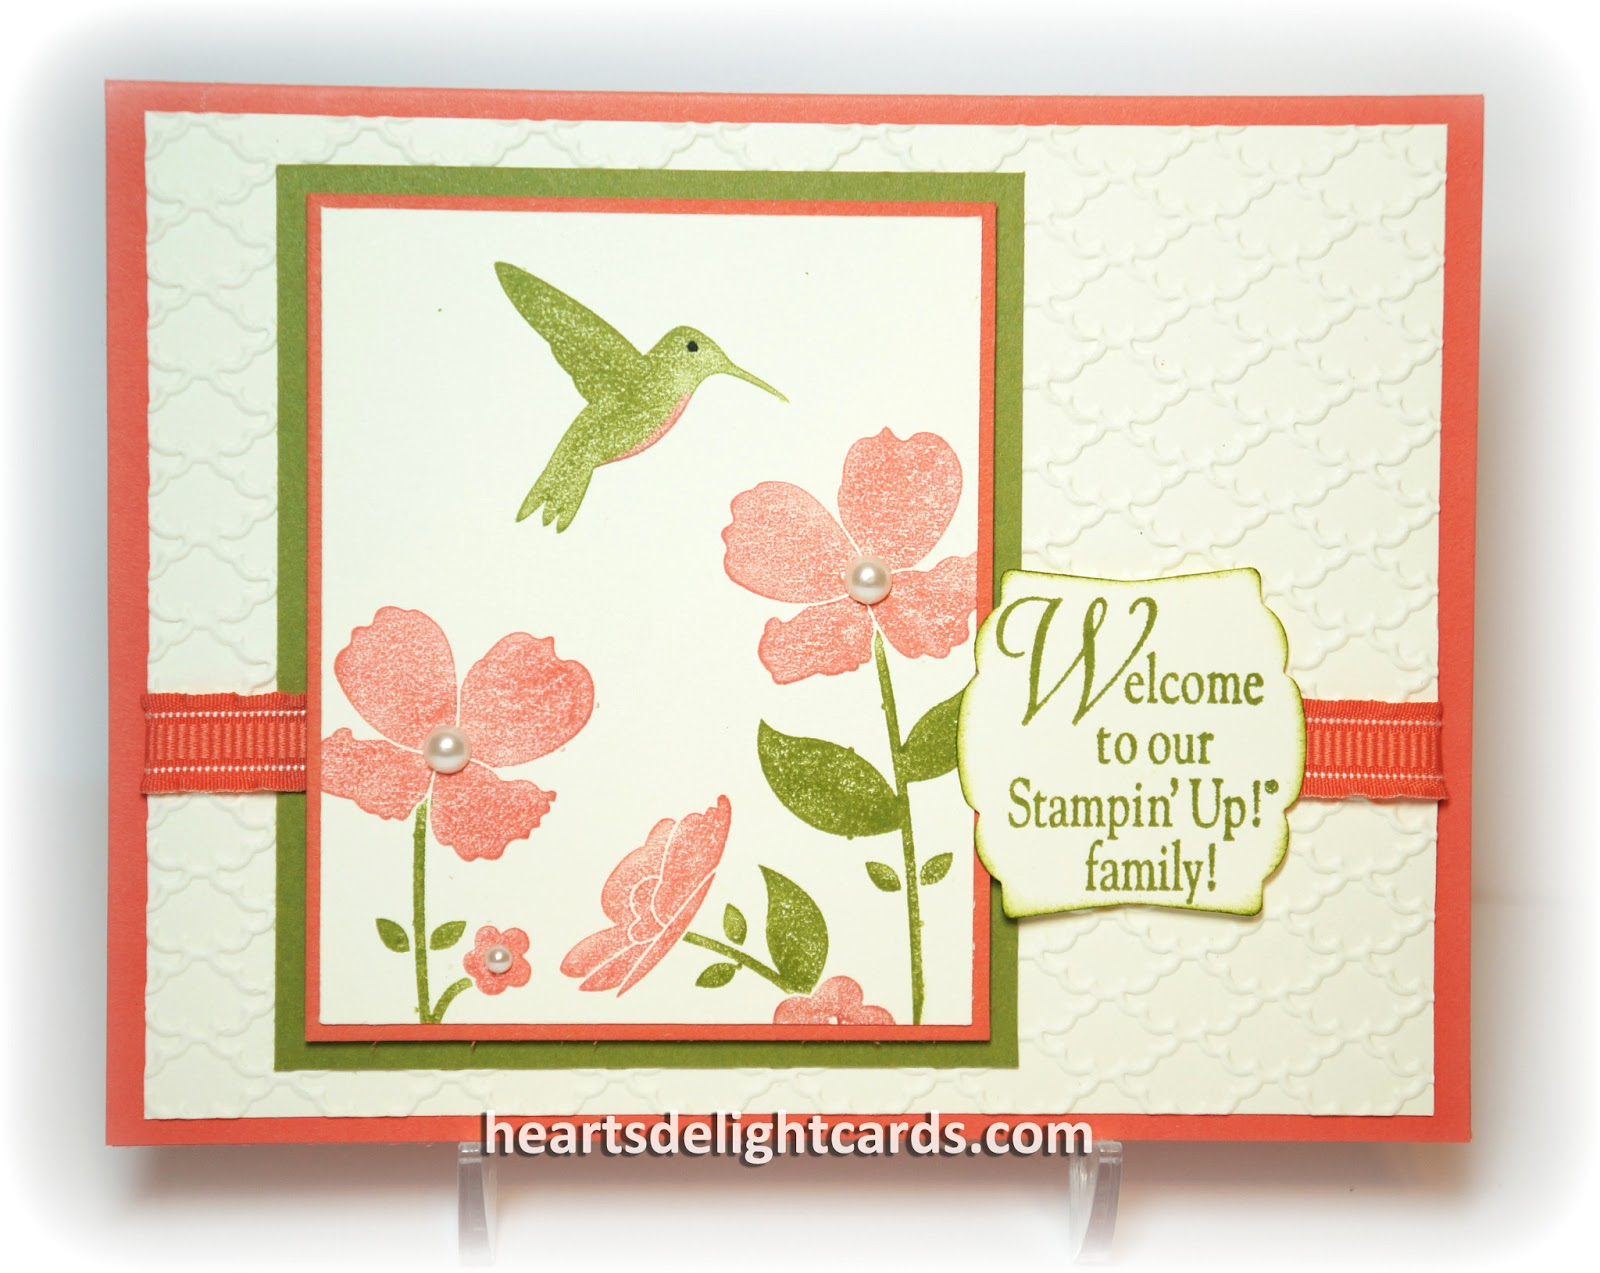 Hearts delight cards may 2013 if you join my stamping family ill send you a pretty welcome card too along with some other handy dandy stuff it doesnt matter where you are kristyandbryce Image collections